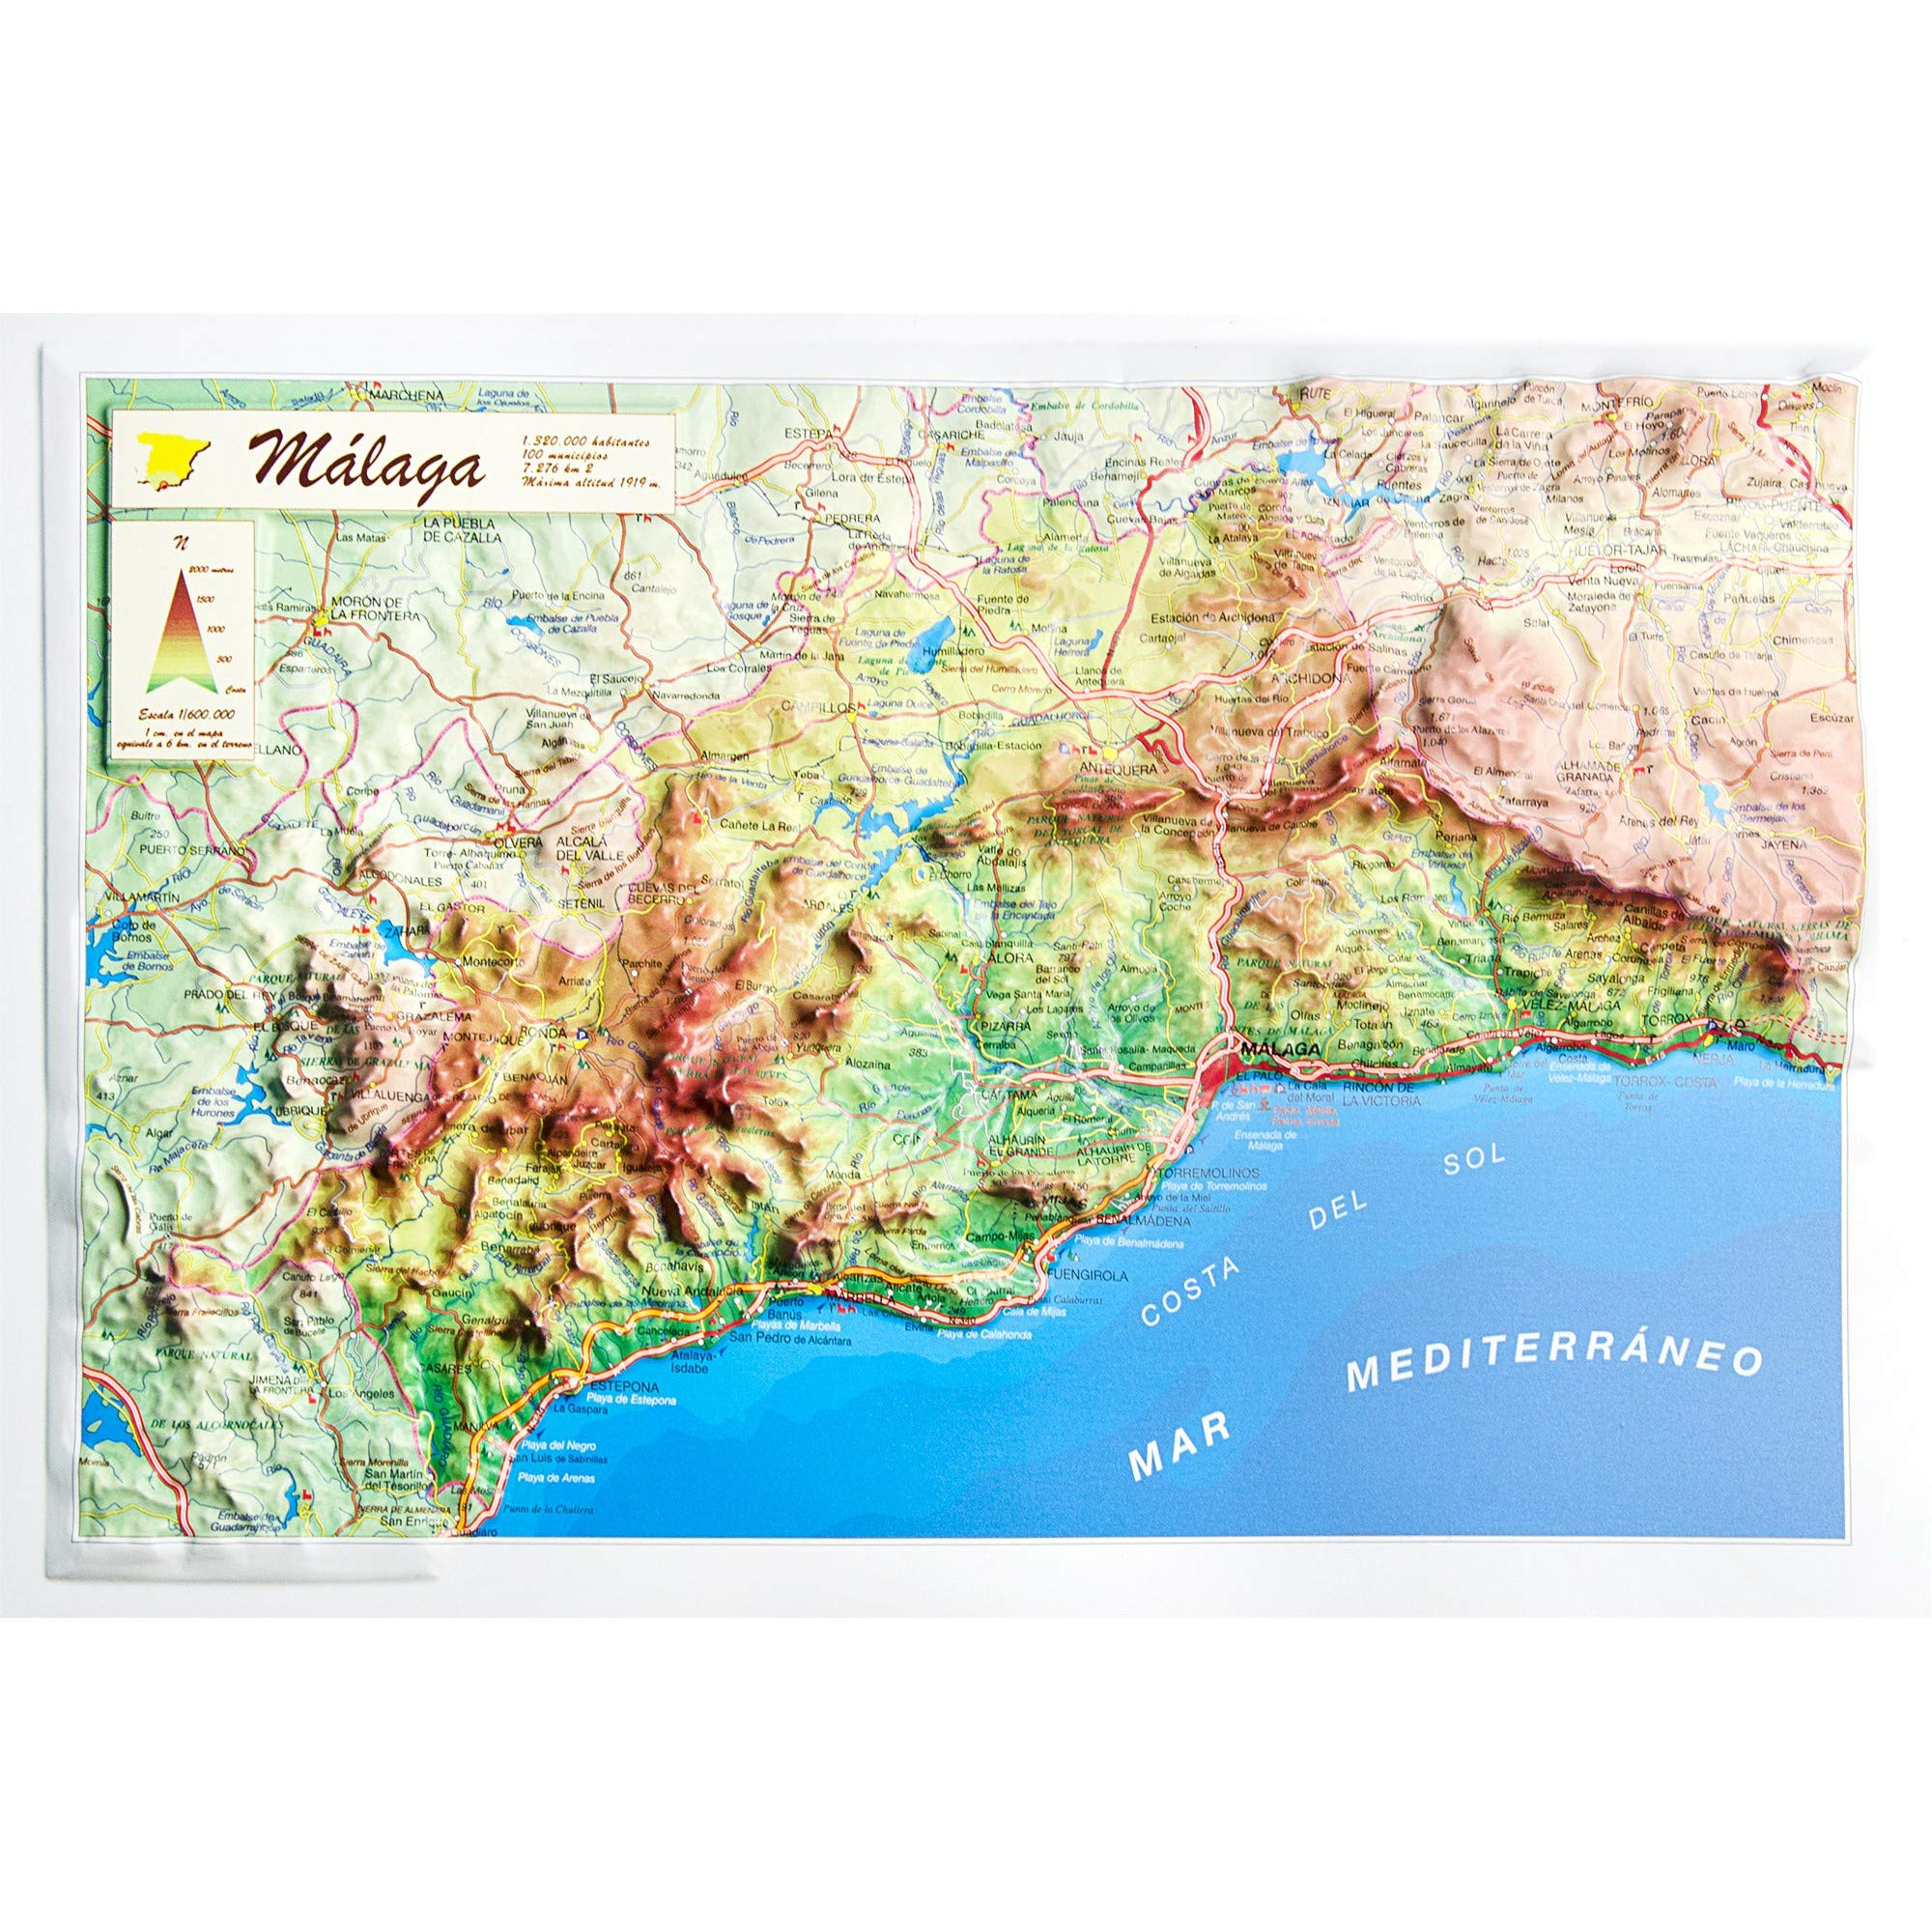 Mapa en relieve de Málaga: Escala 1:600.000: Amazon.es: All 3D ...